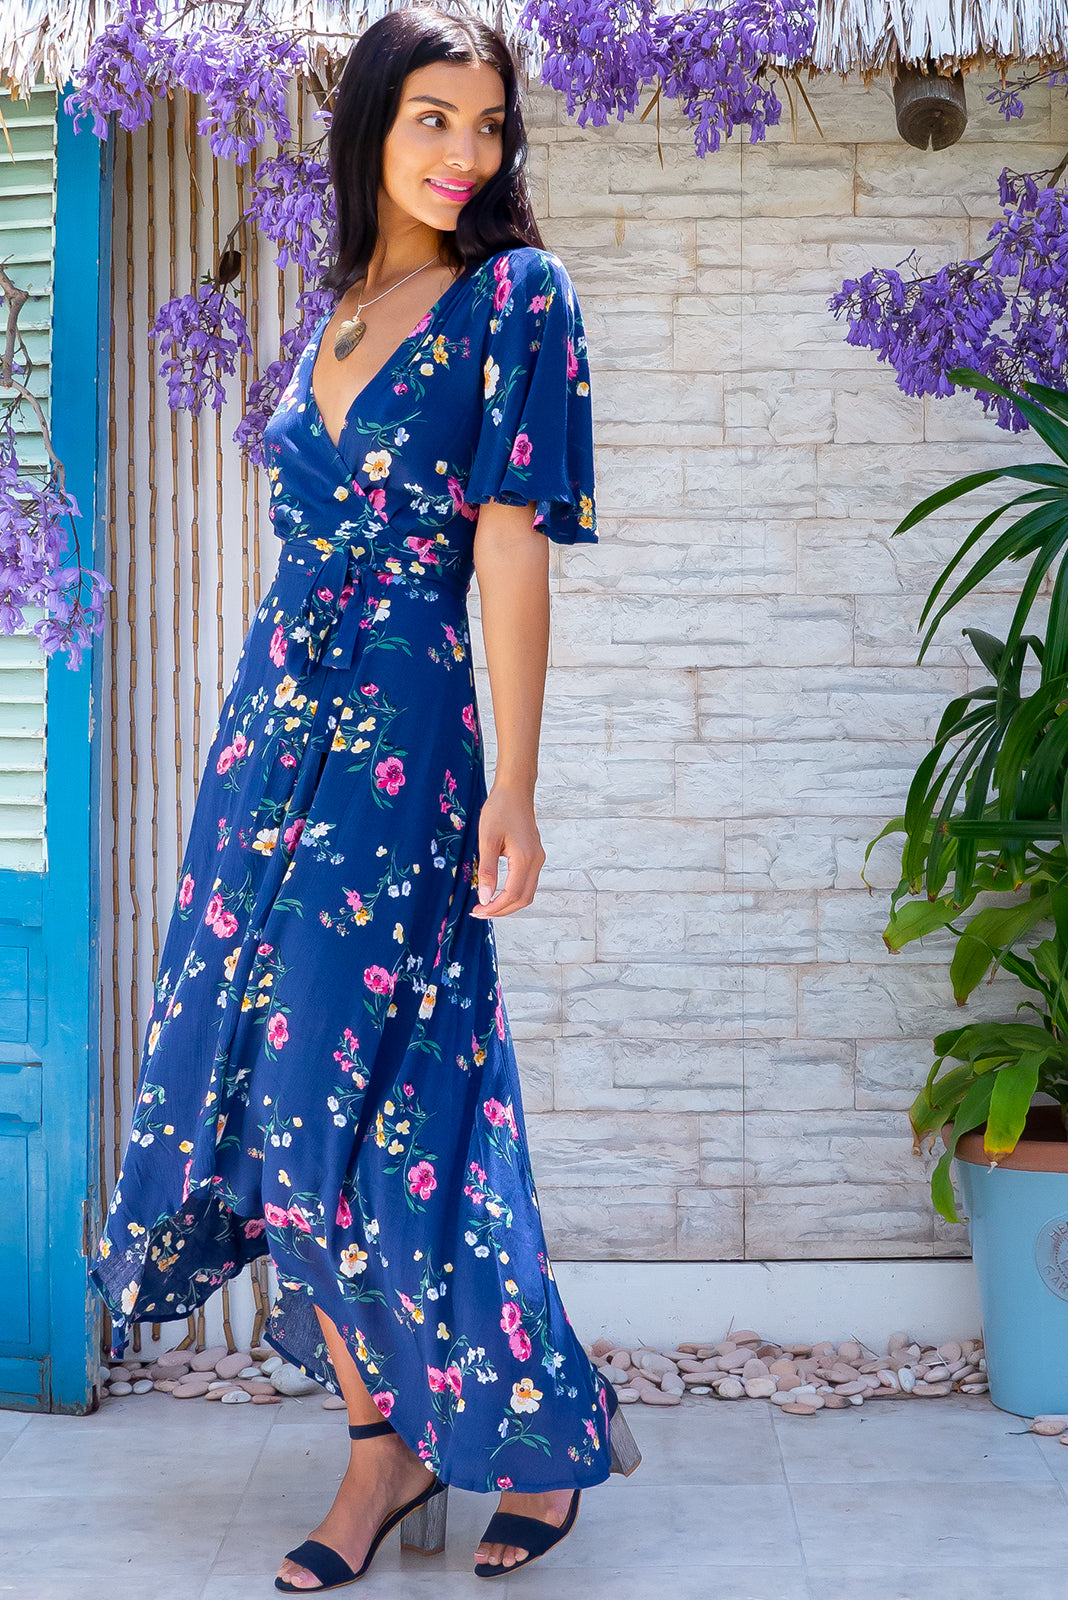 Get wrapped up in vintage style with the Cinnamon Sapphire Blue Maxi Wrap Dress featuring adjustable wrap tie waist, flutter sleeves and 100% crinkle rayon in navy base with cute floral print.